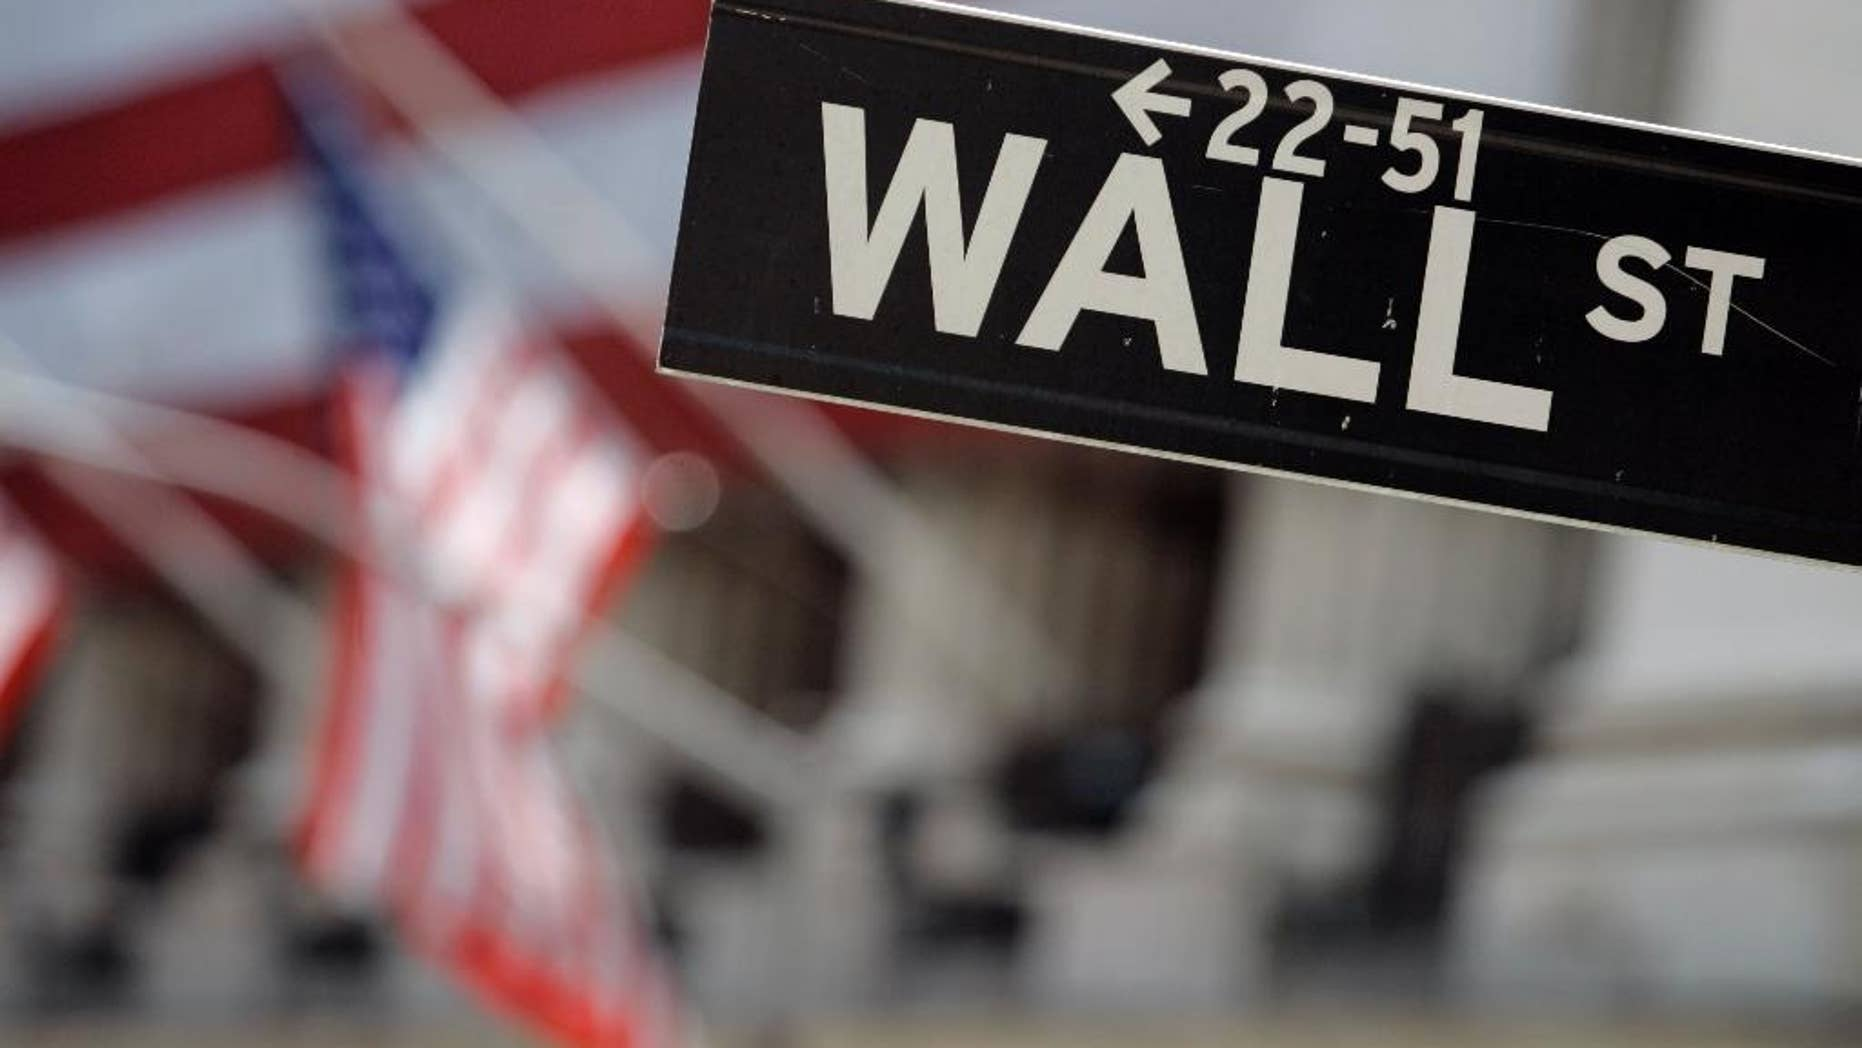 FILE - This May 11, 2007 file photo shows a Wall Street sign in front of the flag-draped facade of the New York Stock Exchange. U.S. stocks are edging higher Thursday, April 2, 2015, as the market shakes off two days of losses. (AP Photo/Richard Drew, File)